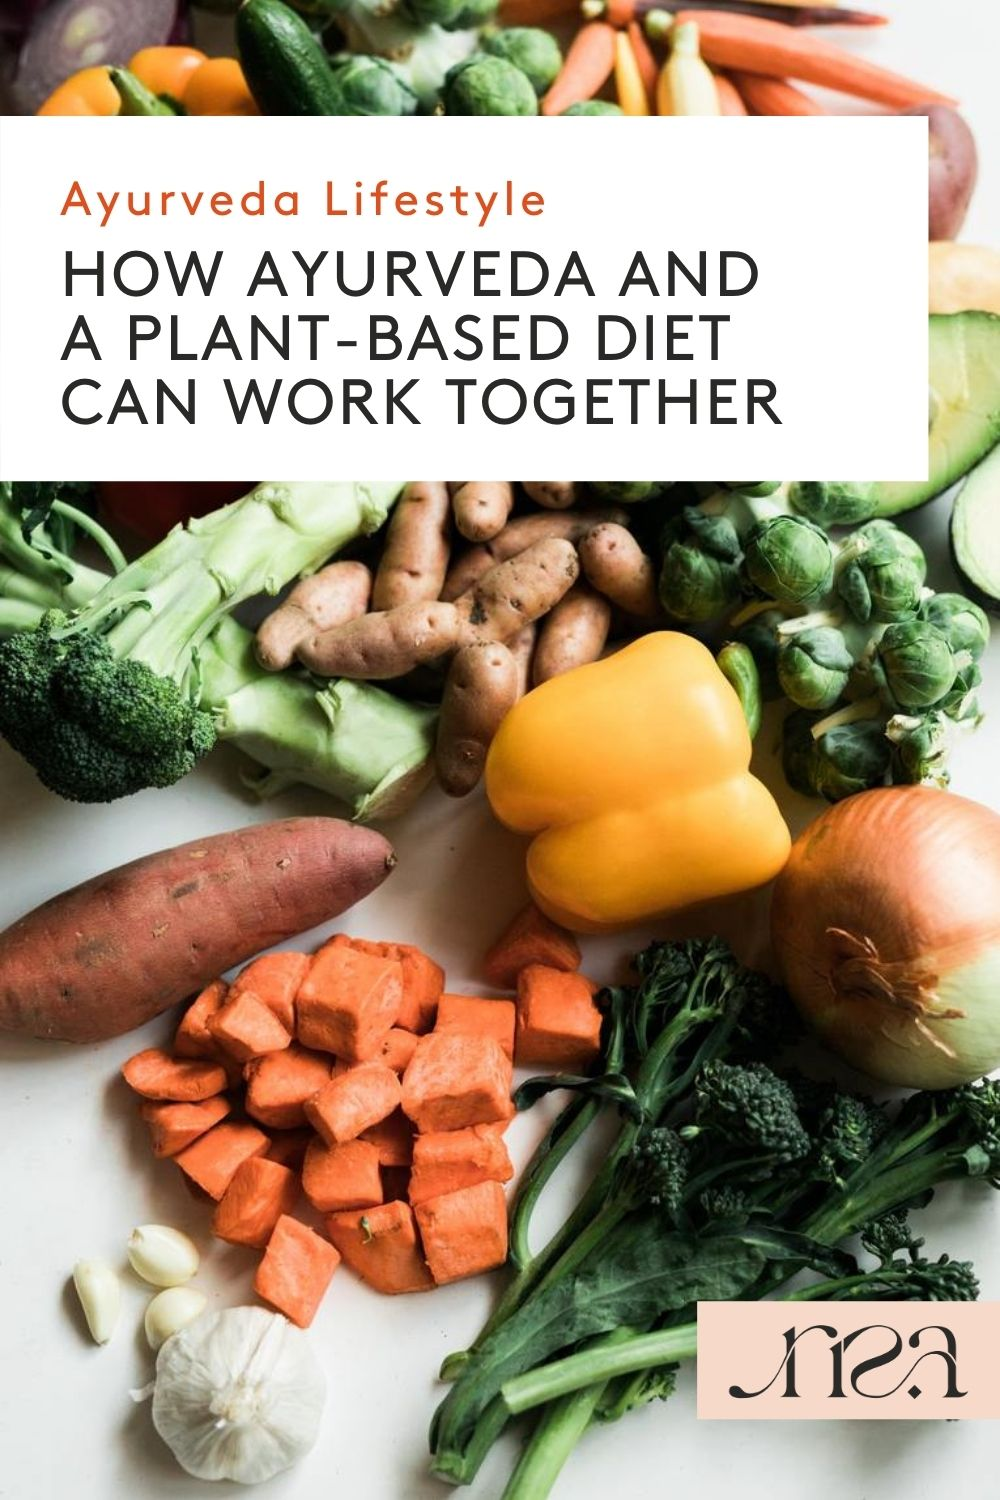 How Ayurveda and a Plant-Based Diet Can Work Together